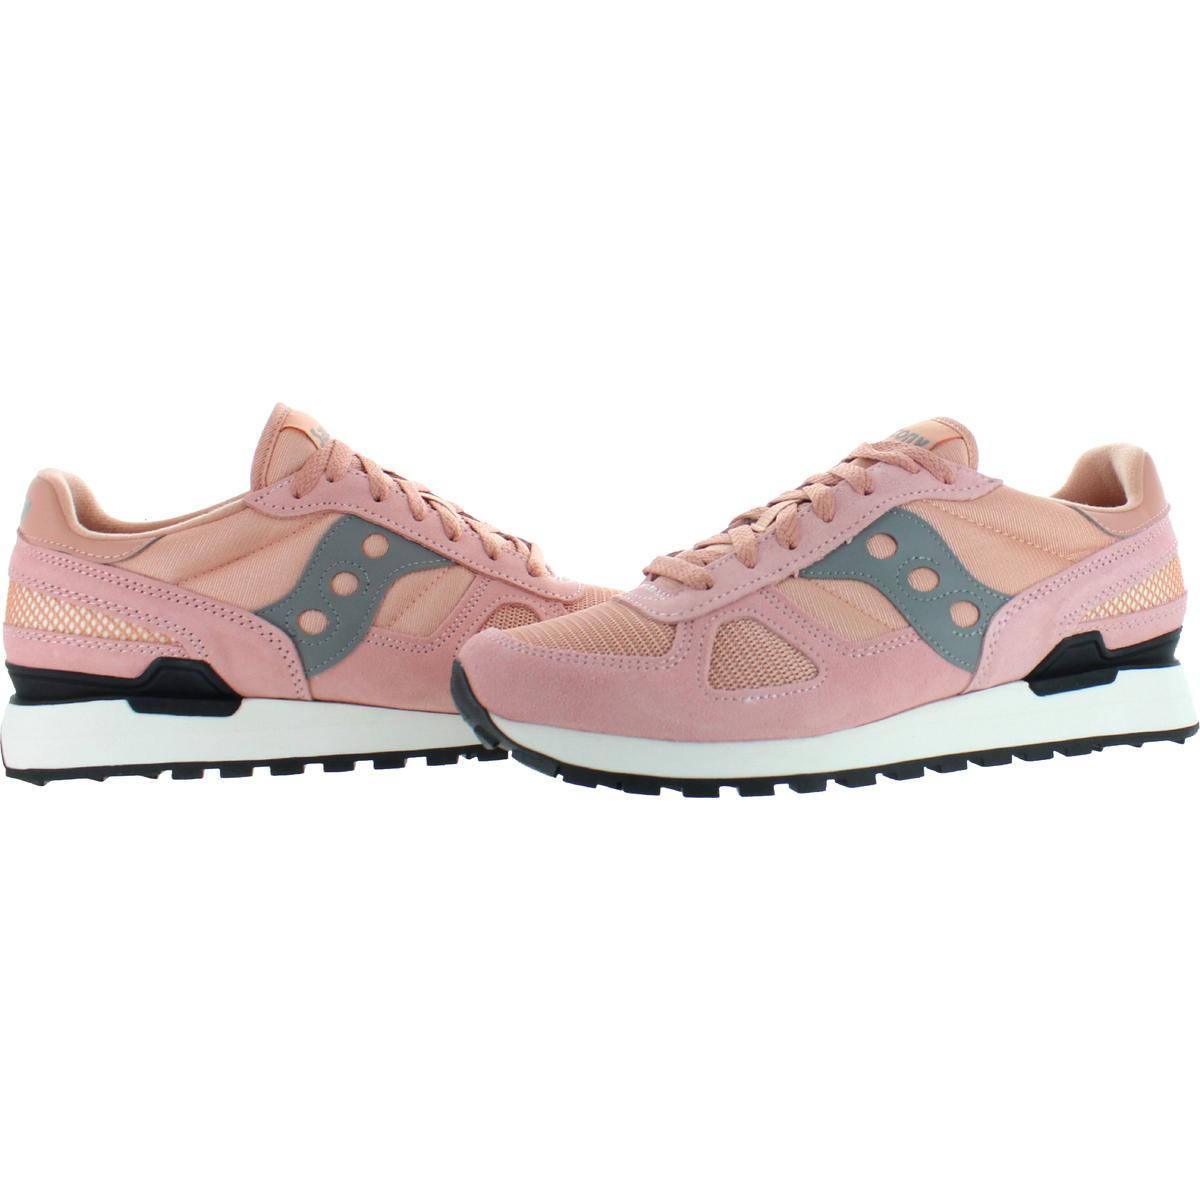 Saucony-Mens-Shadow-Original-Trainers-Suede-Comfort-Sneakers-Shoes-BHFO-0431 miniatuur 30